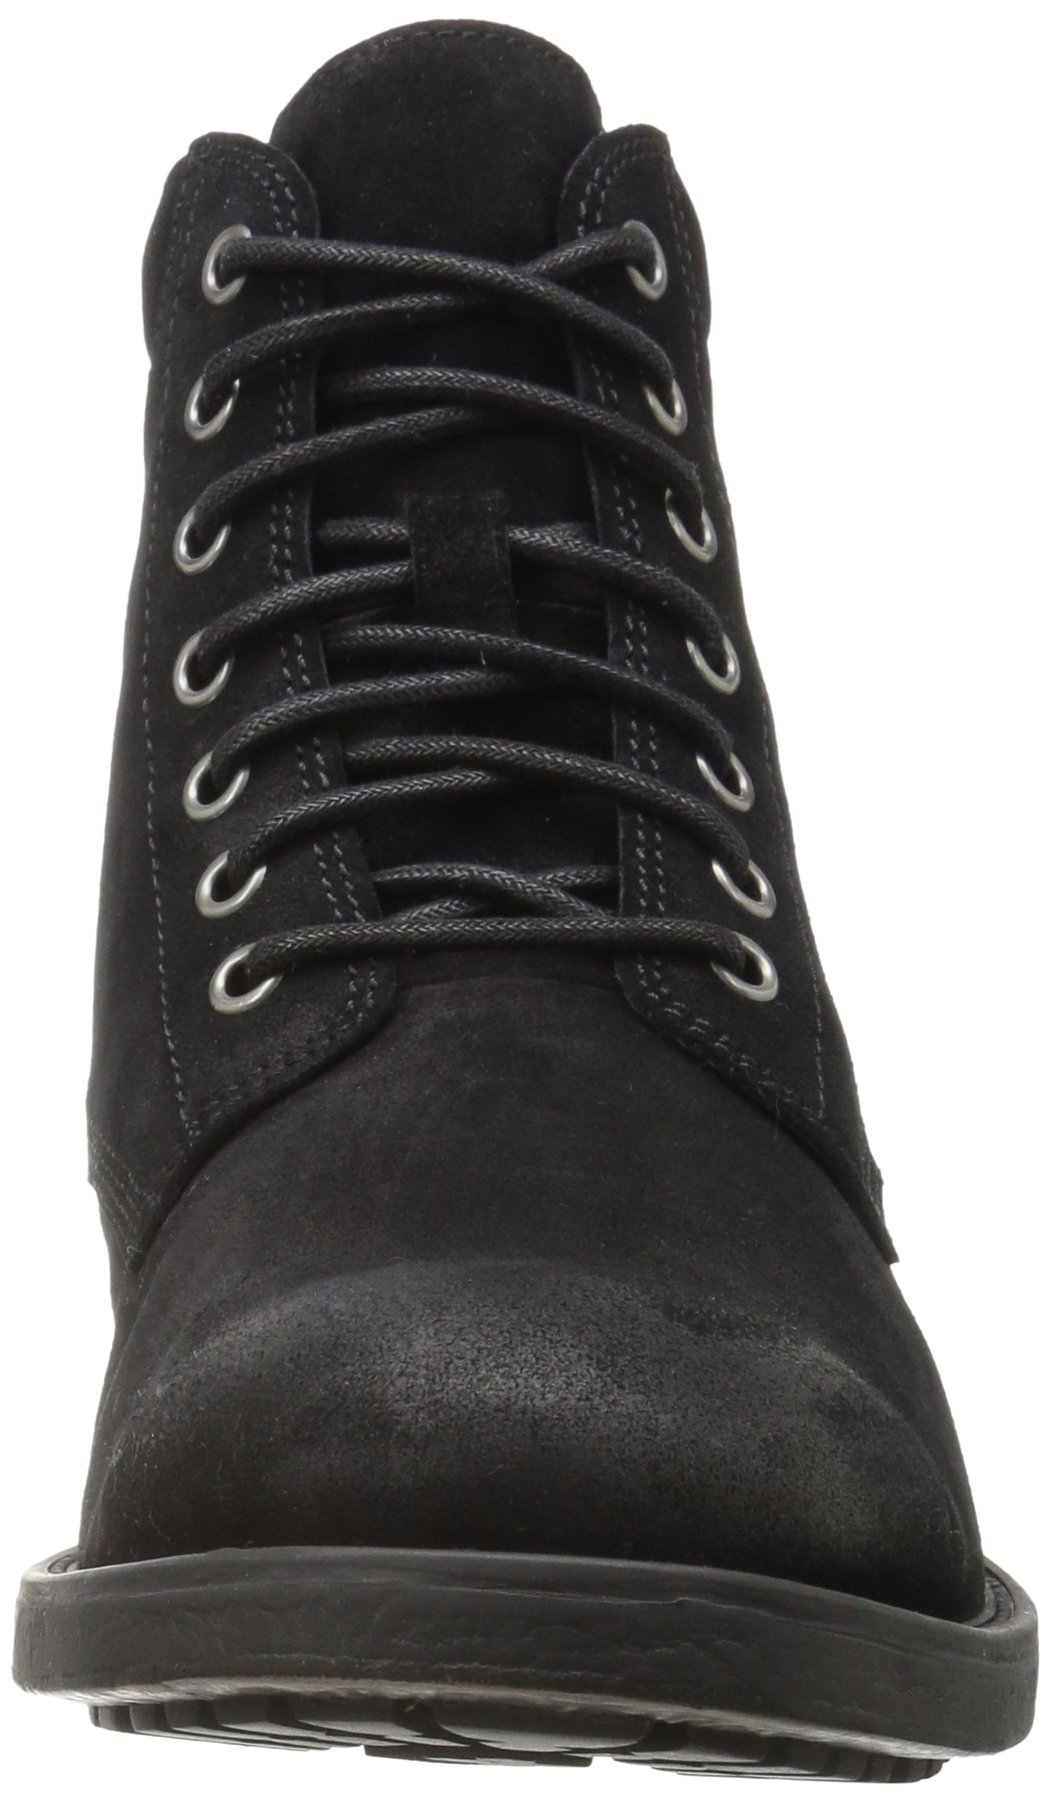 206 Collective Men's Denny Lace-up Motorcycle Boot, Black Burnish, 9.5 D US by 206 Collective (Image #4)